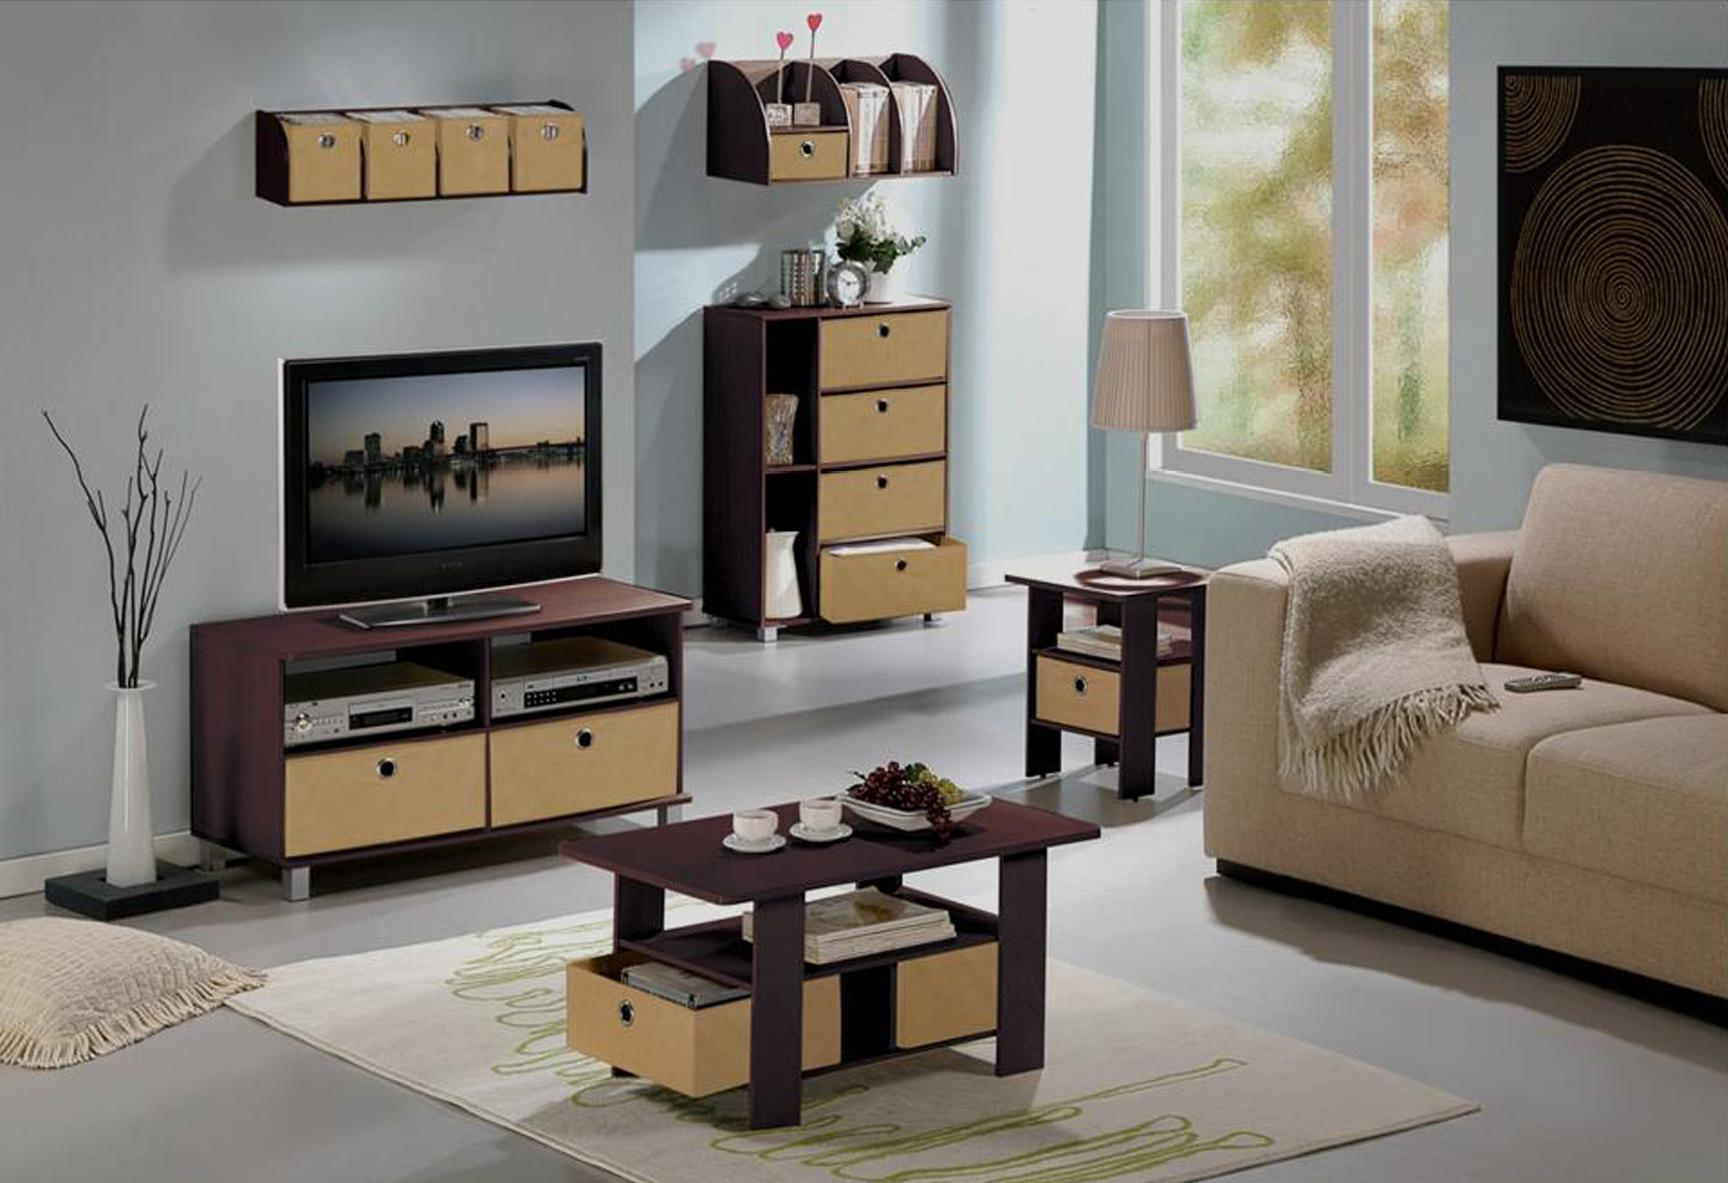 Widely Used Furinno 11157dbr/bk End Table Bedroom Night Stand W/bin Drawer, Dark With Regard To Tv Cabinets And Coffee Table Sets (View 12 of 20)